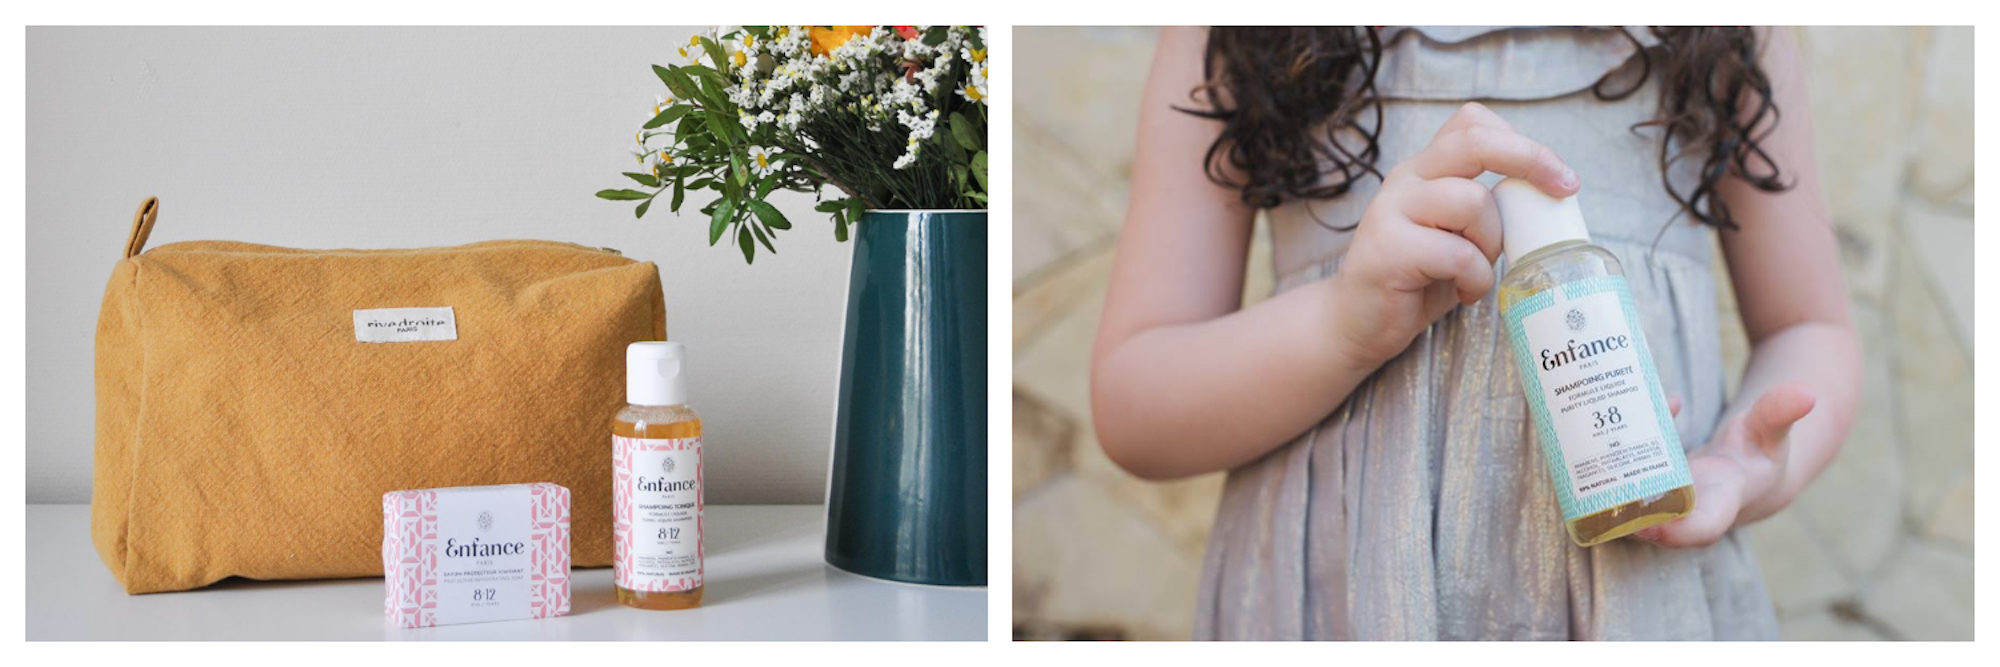 Enfance is one of our favorite French beauty brands for its organic, family-friendly, made-in-France products.